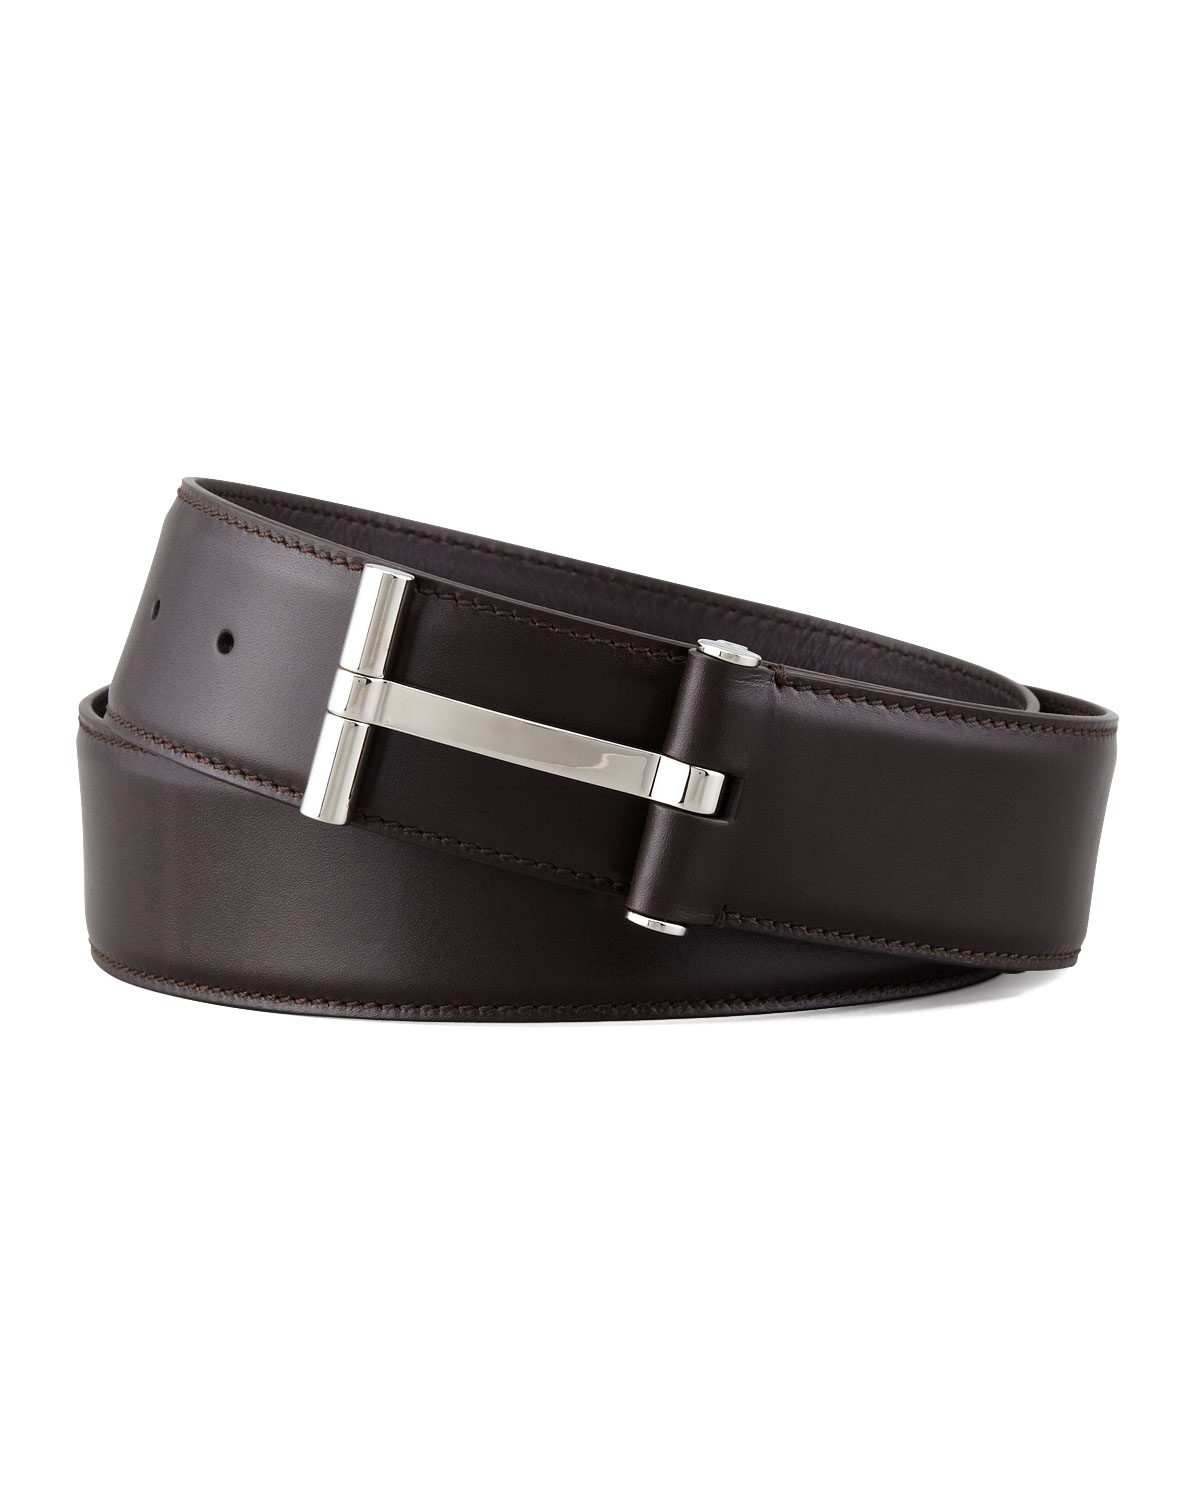 463170229fa1 TOM FORD Men s Leather T-Buckle Belt